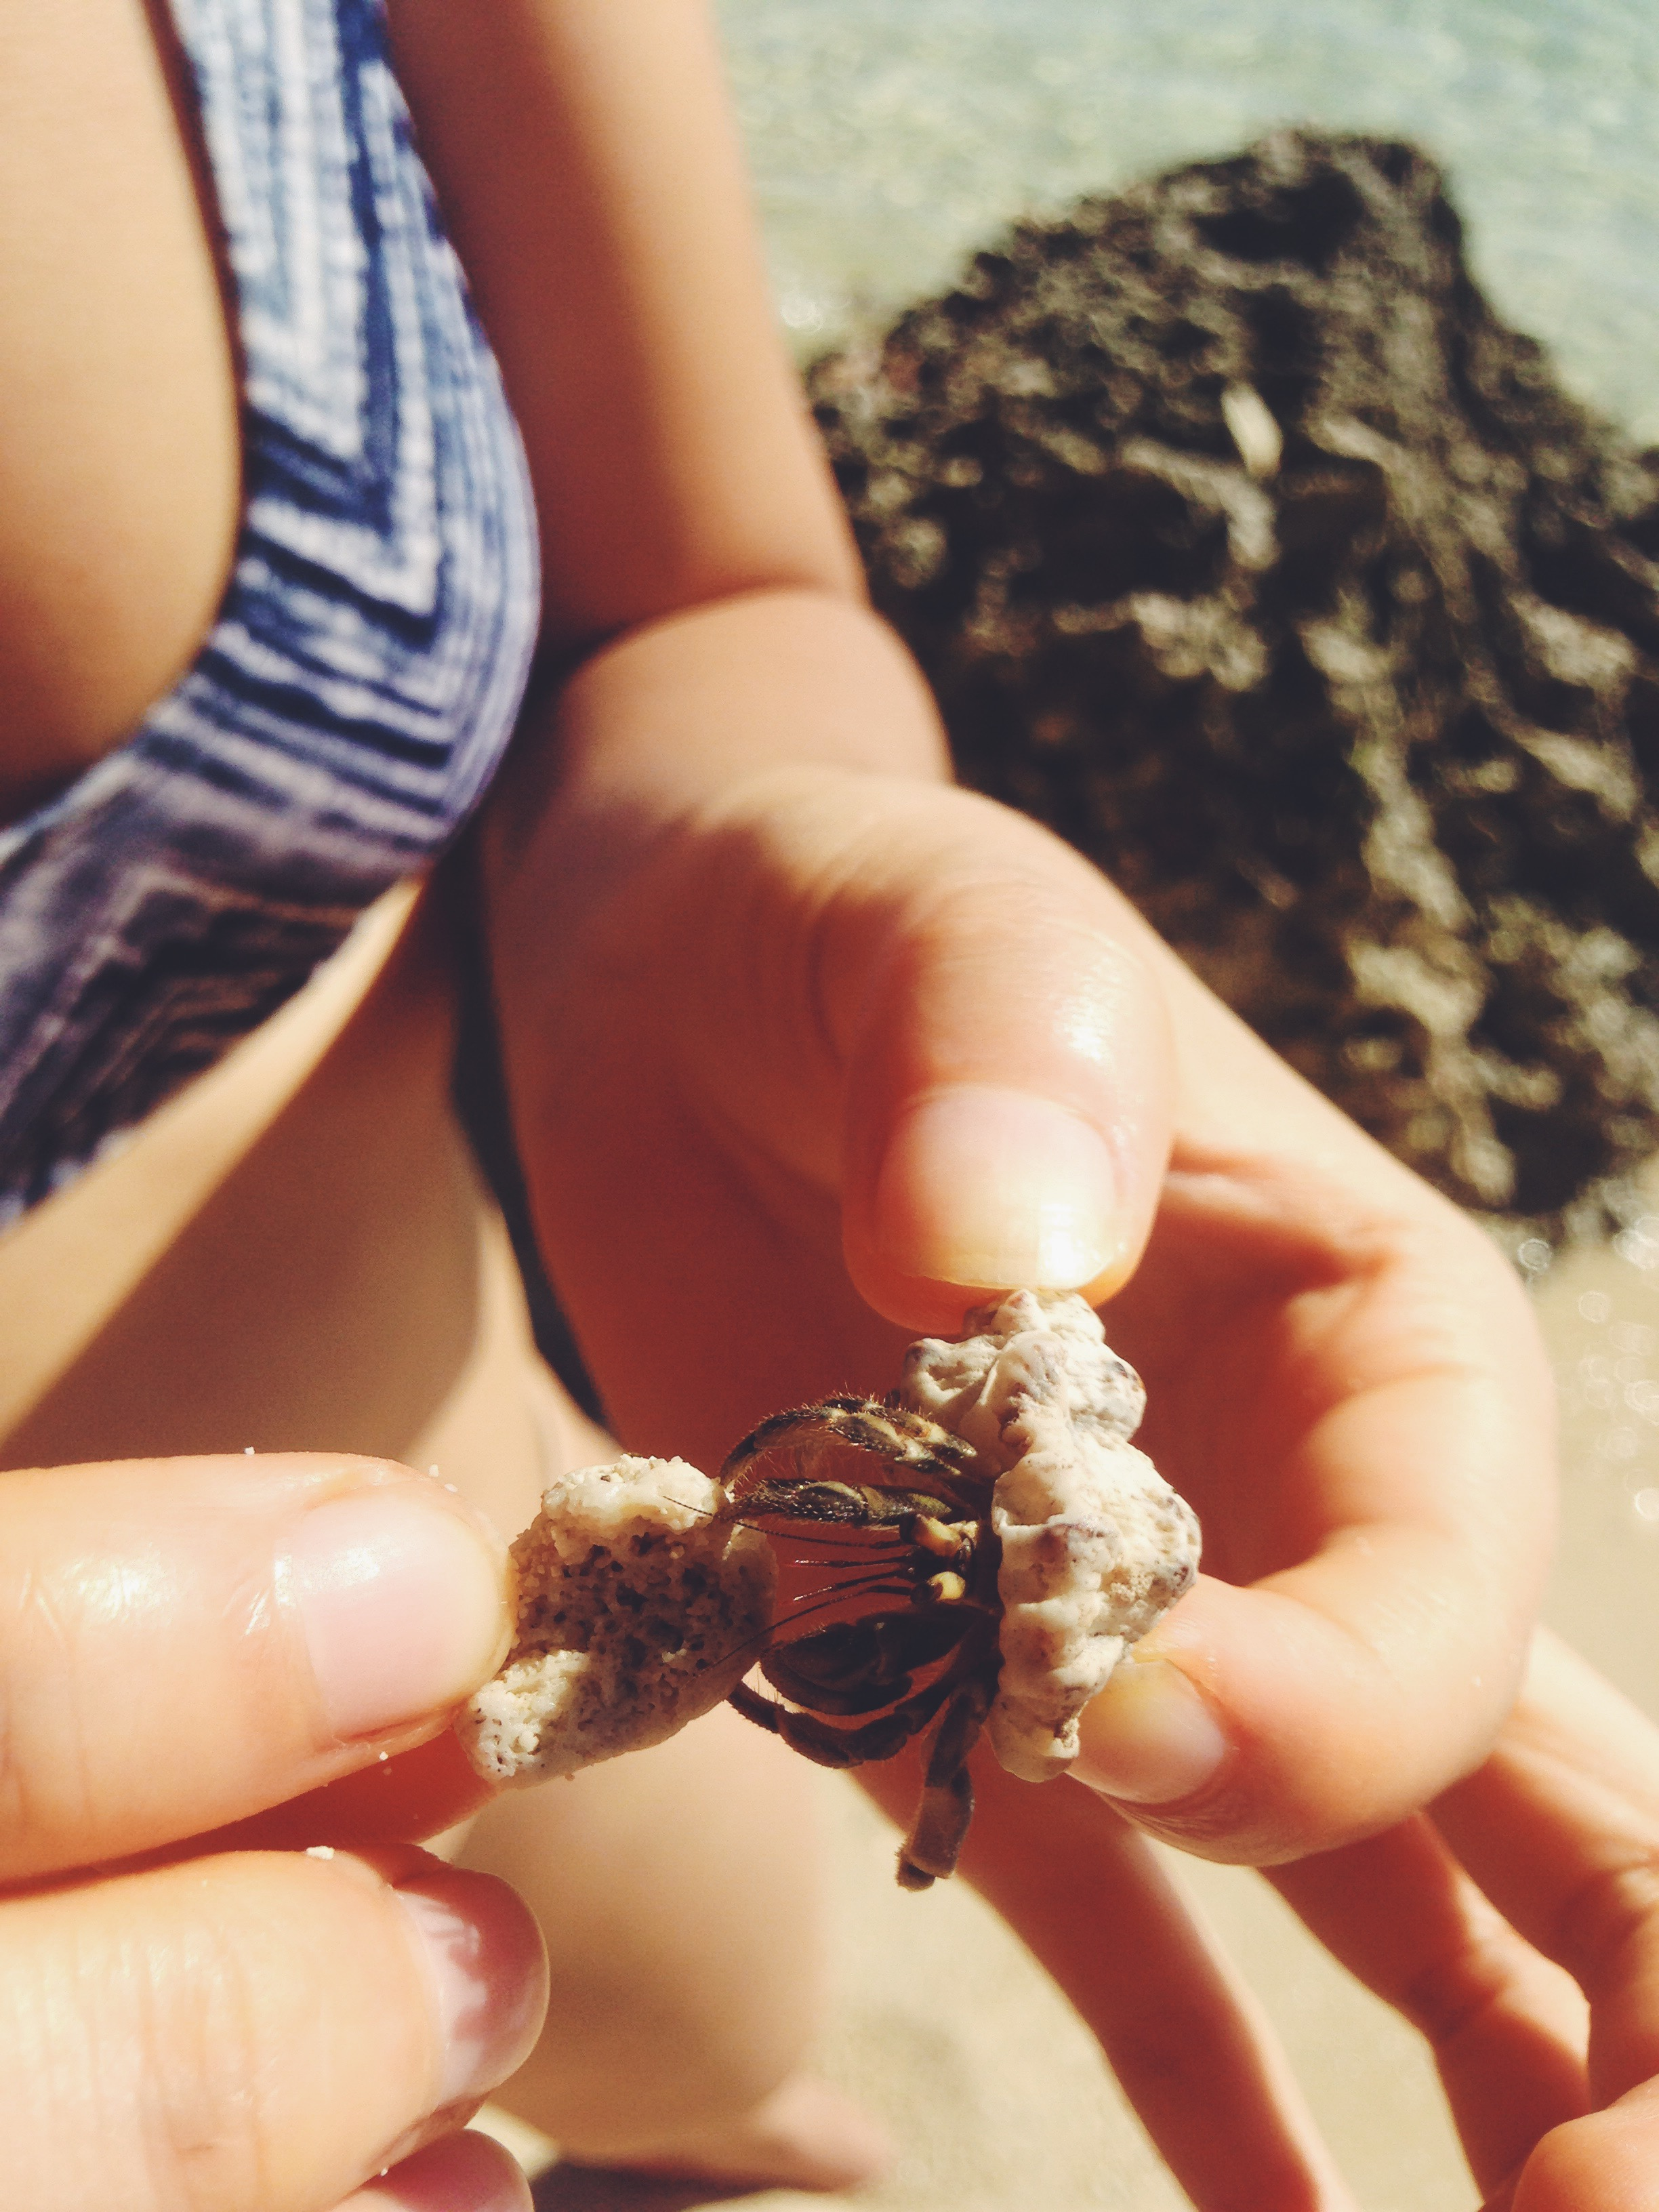 This hermit crab was vicious! Lil sucker pinched me so hard.